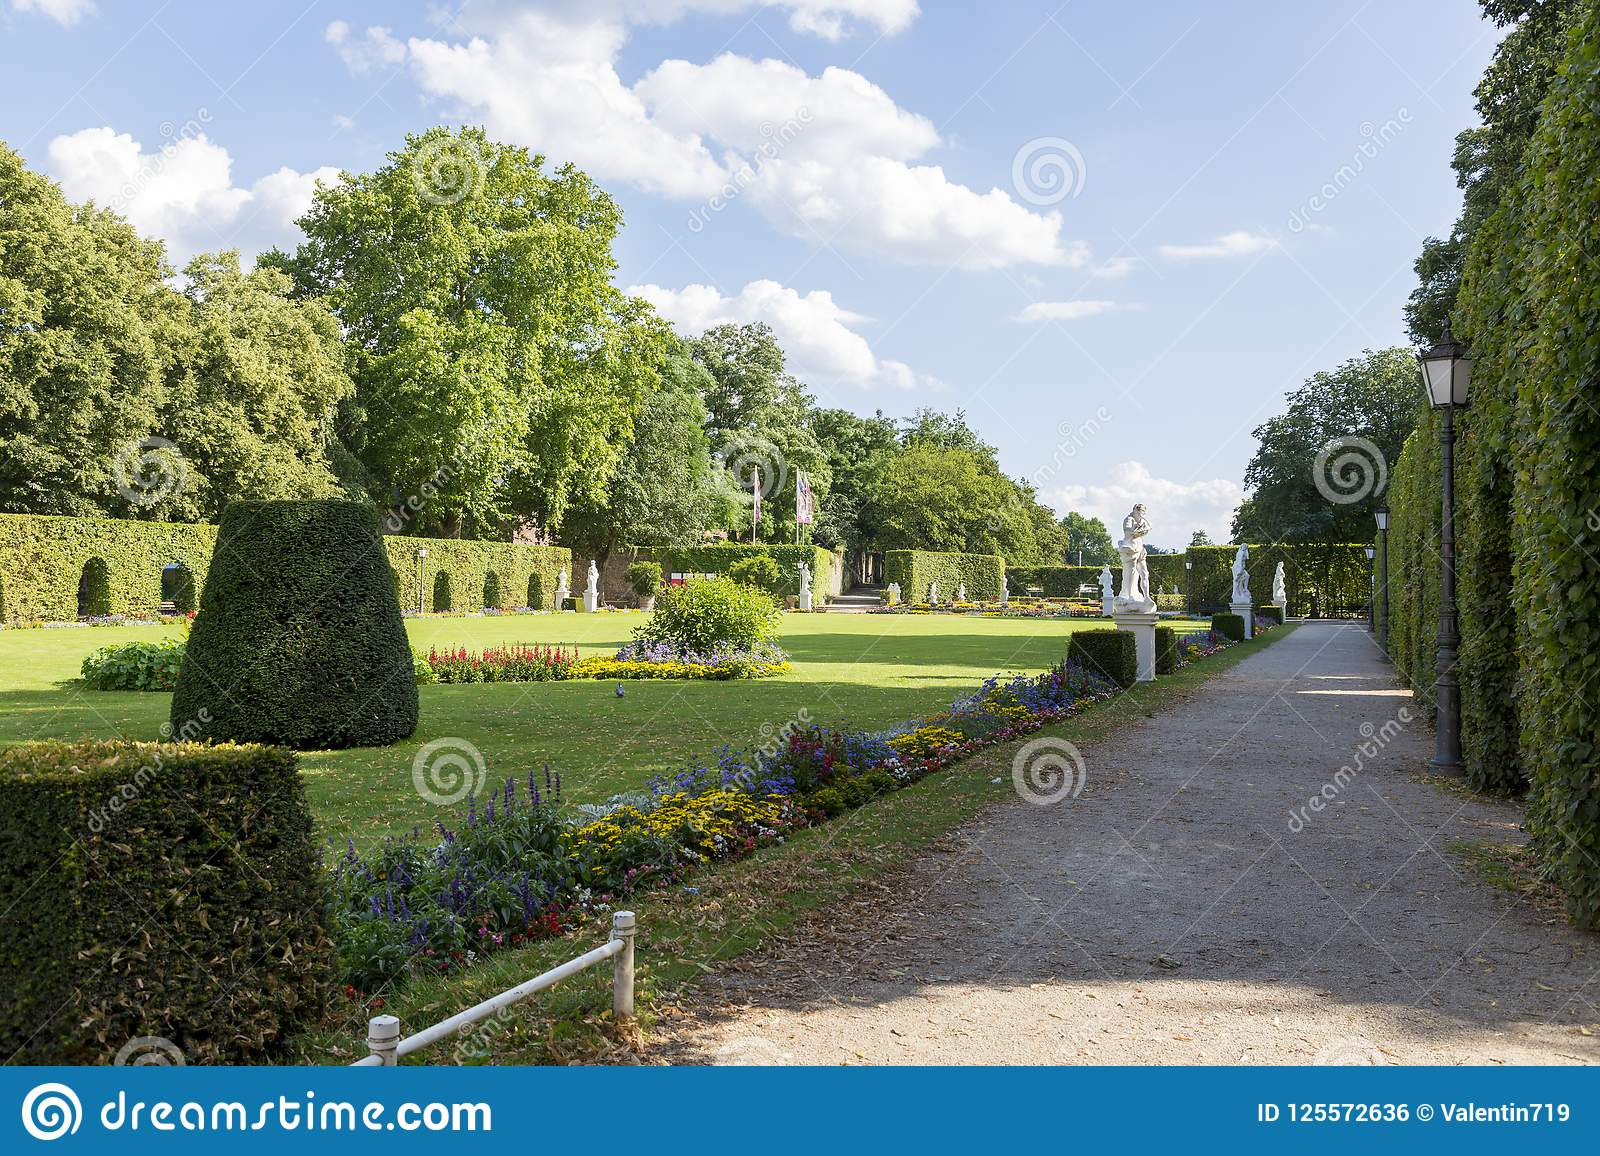 Palace garden in front of the Prince-elector Palace in the center of Trier